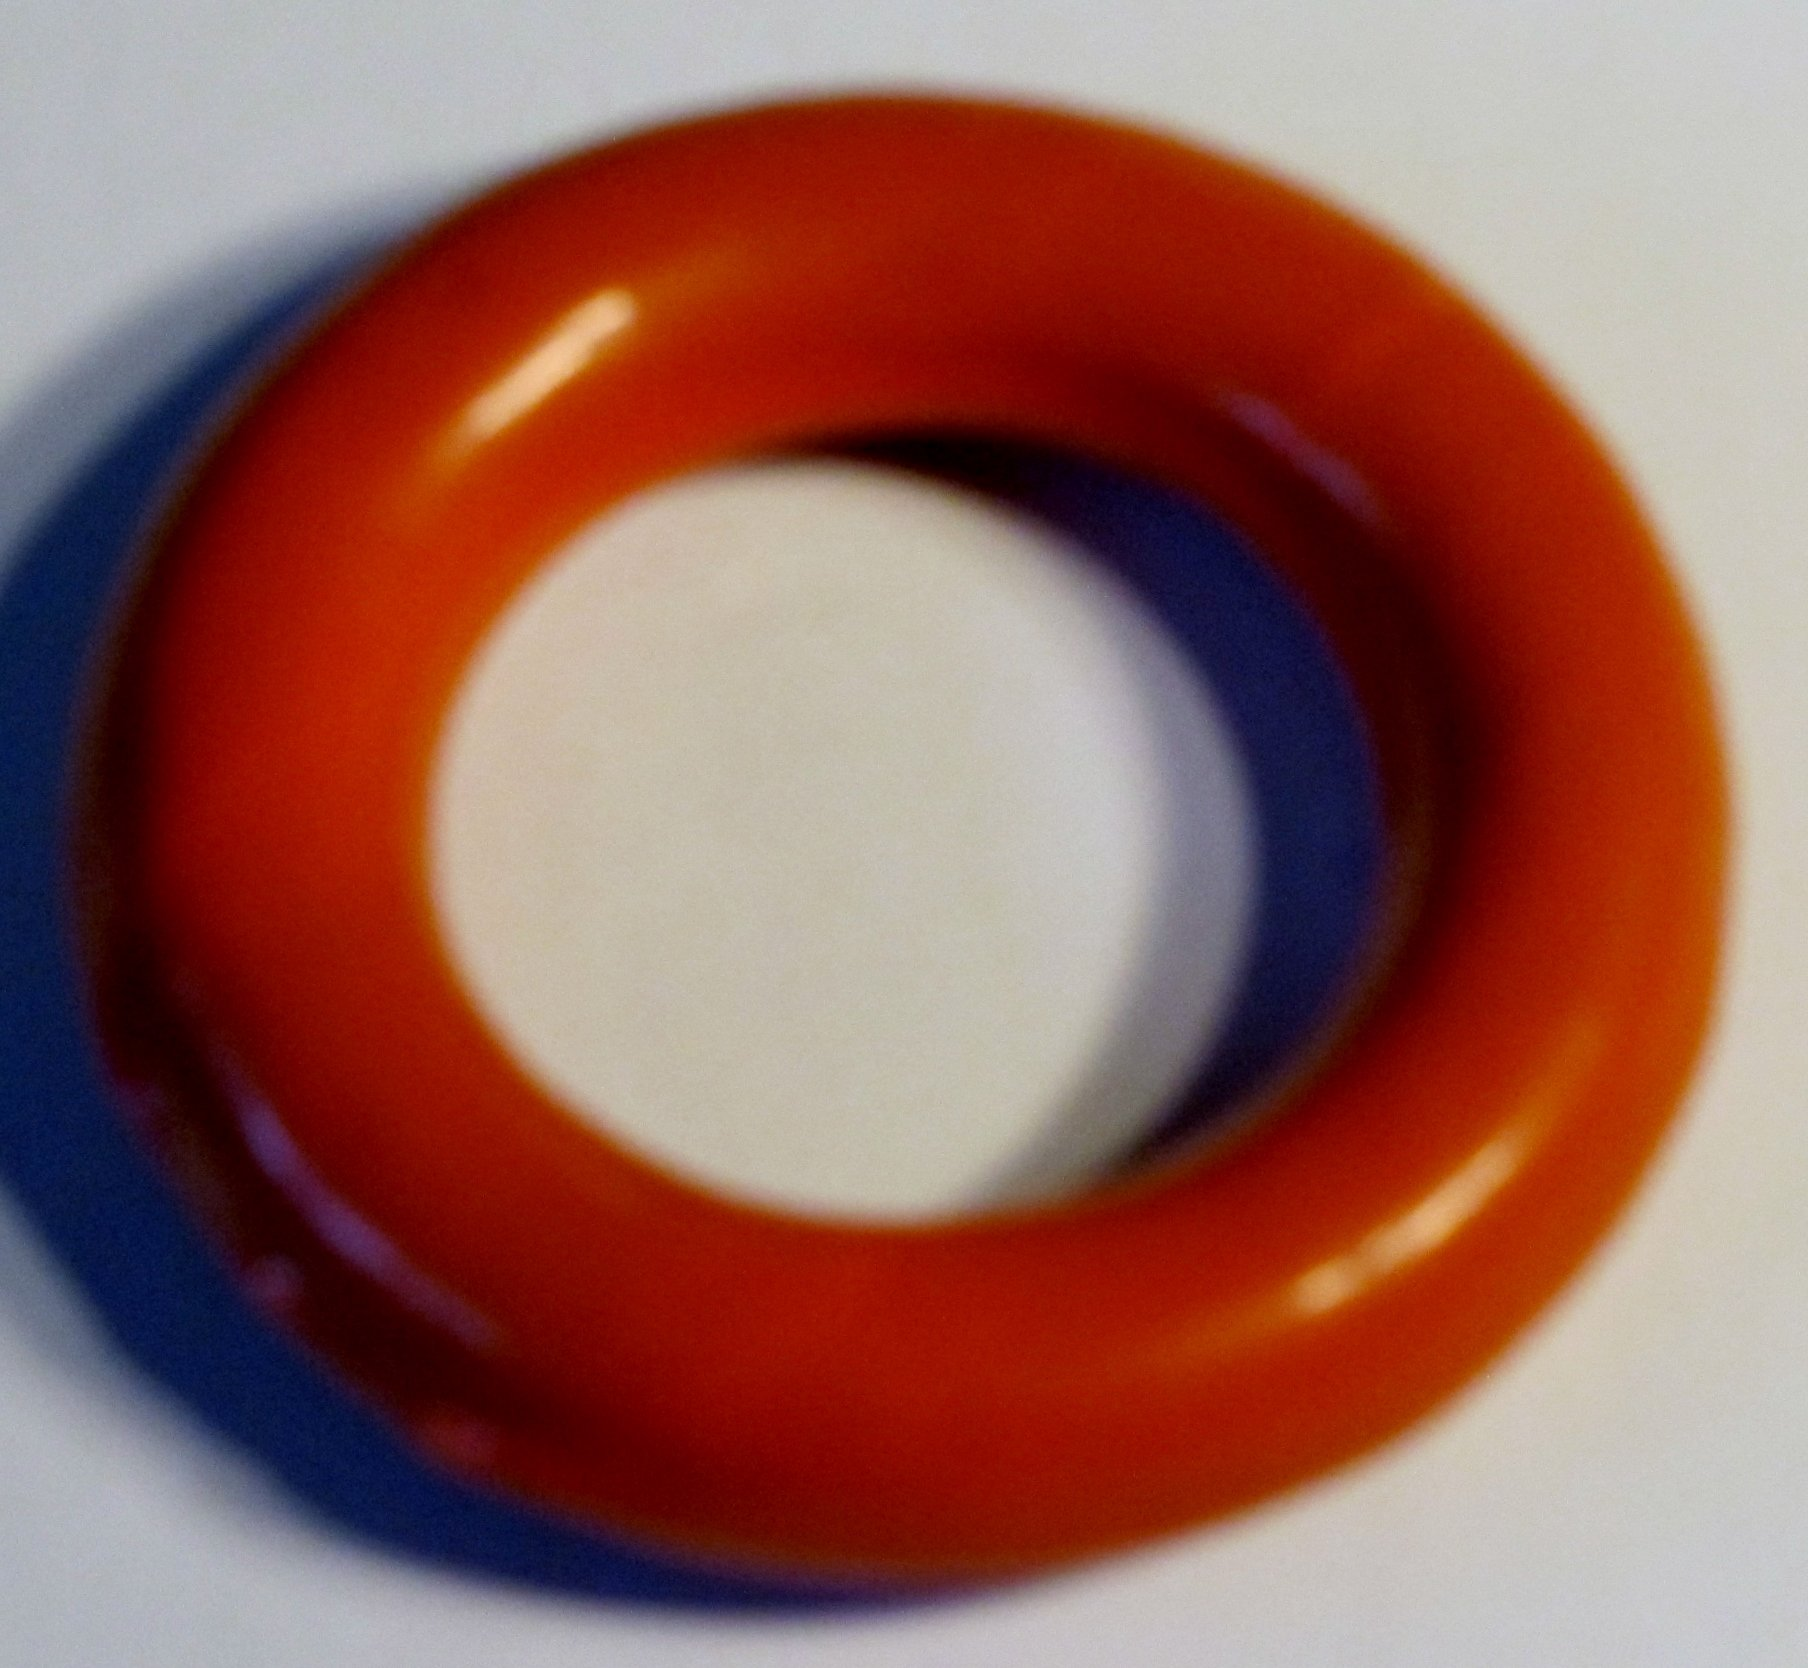 PVC Donut Ring, 56mm, Heavy Weight for Lab Water Bath Flask Stabilization by CB